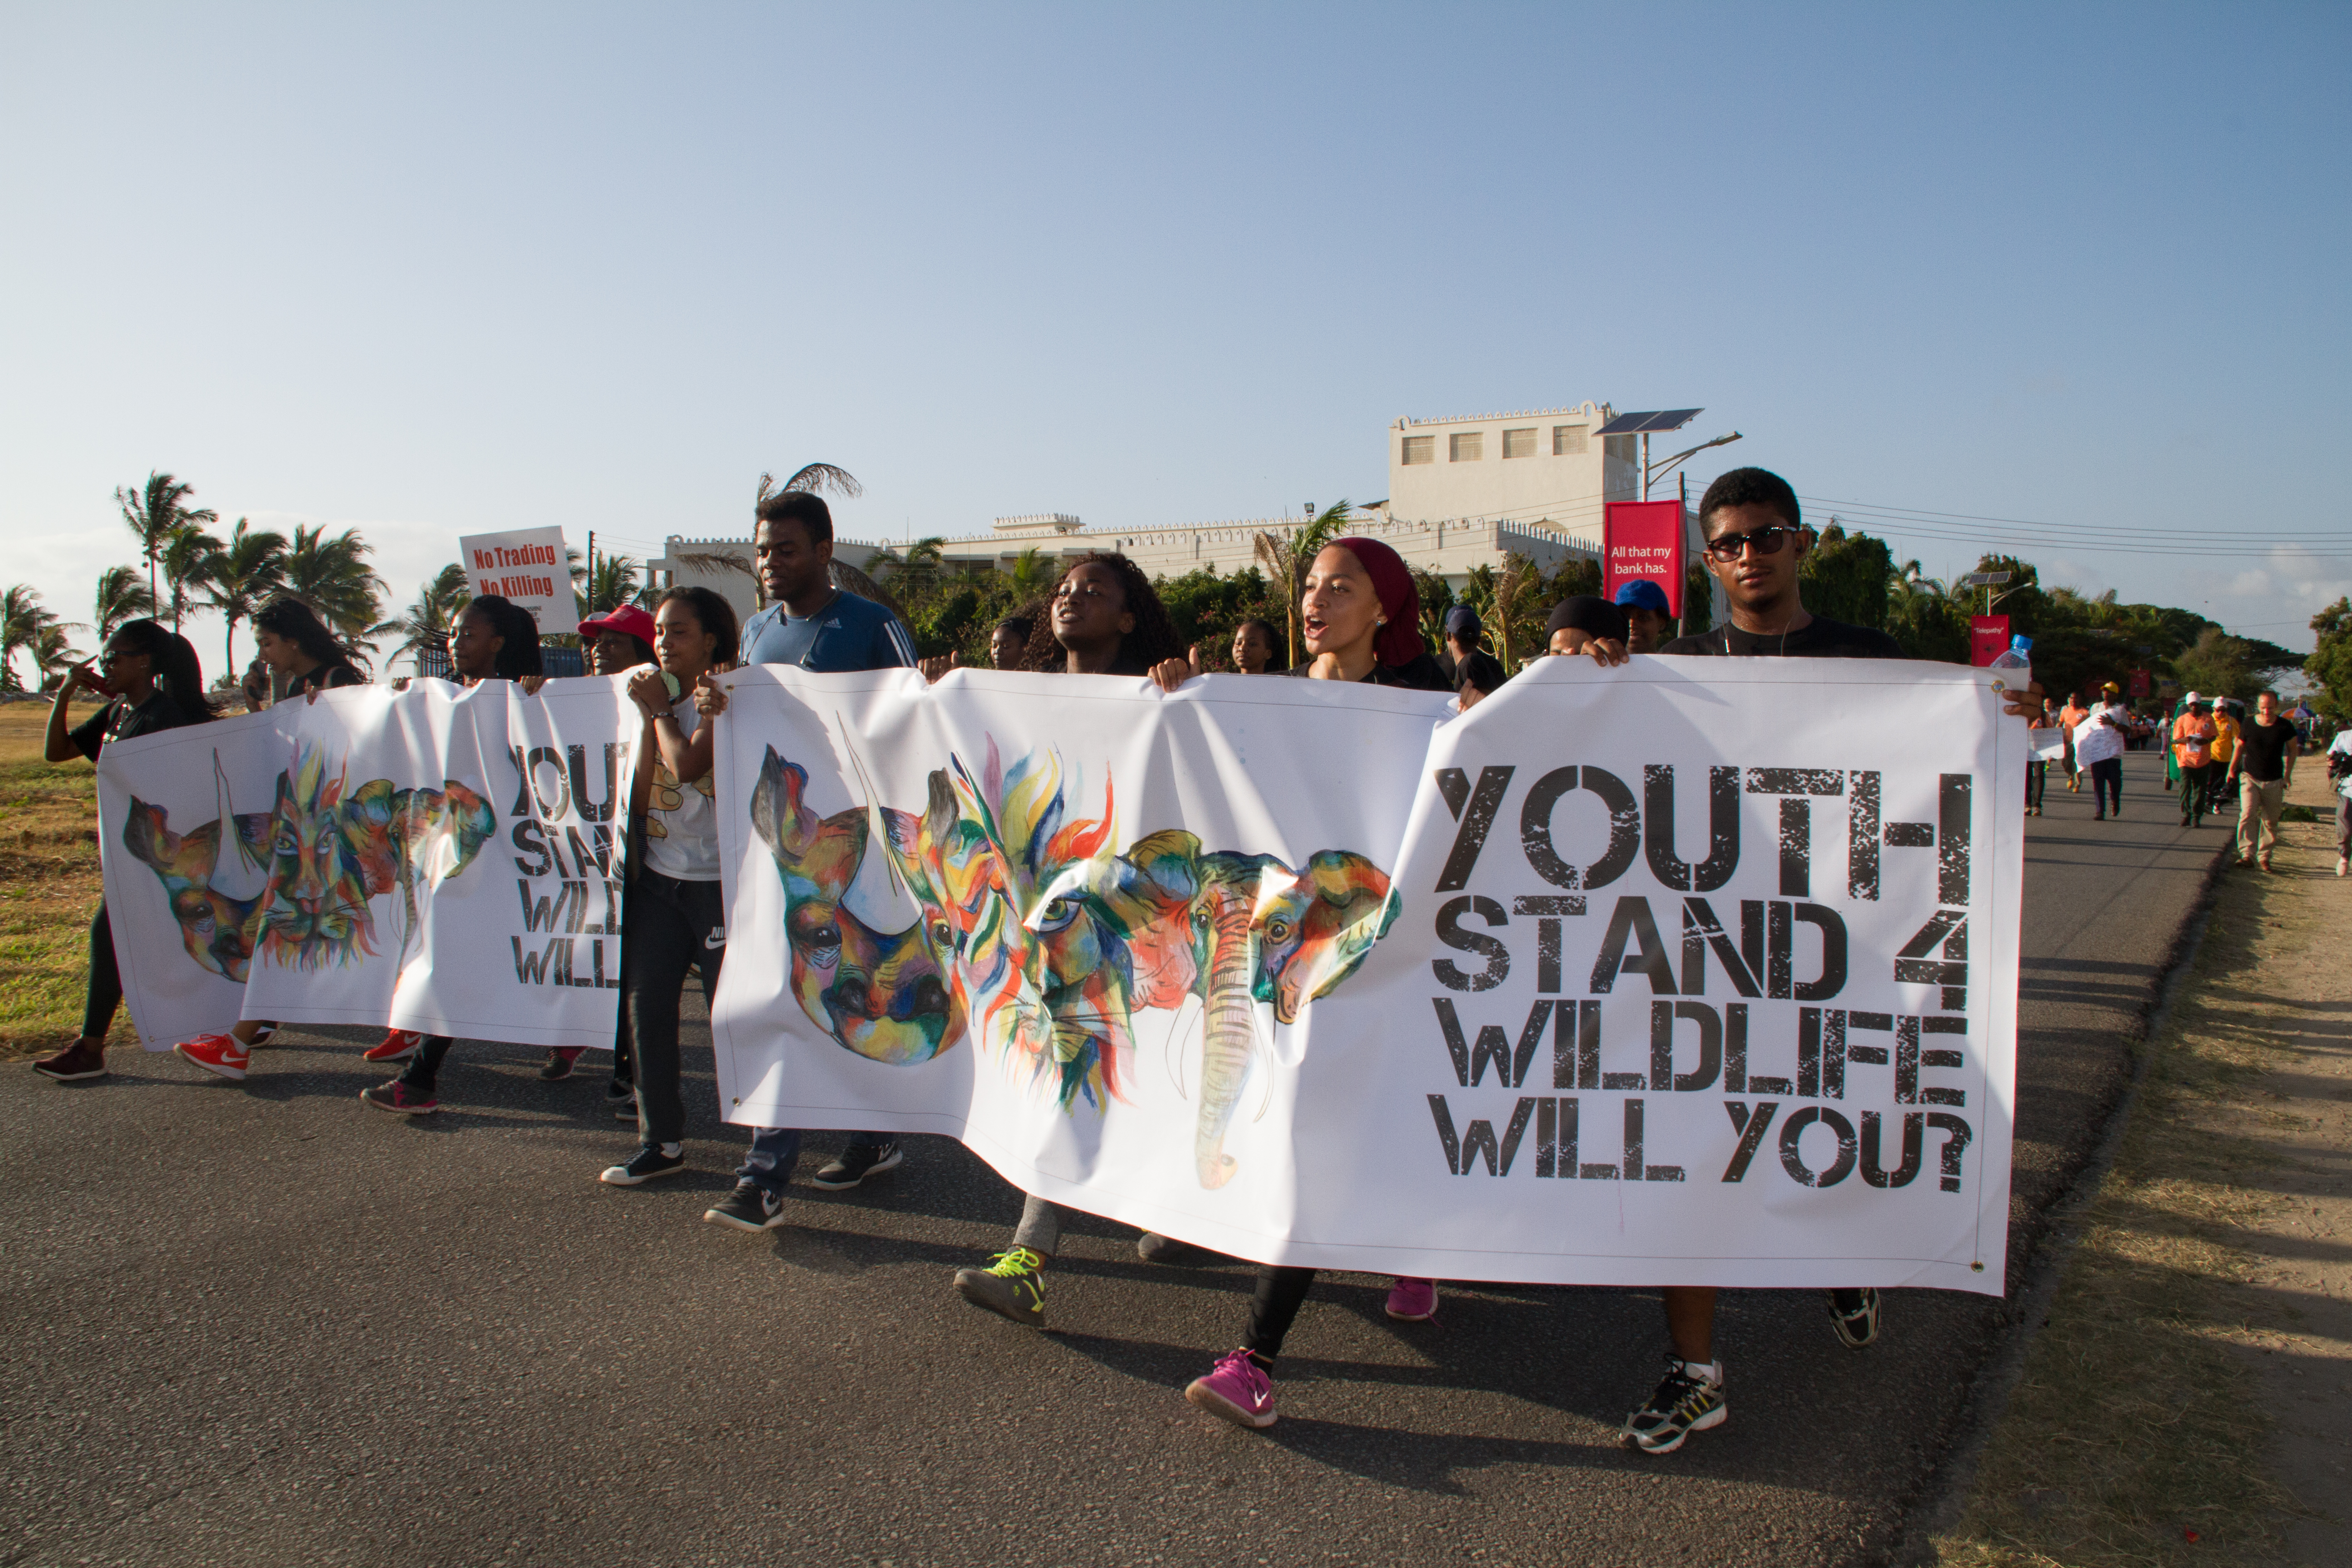 A group of young Tanzanians march in the 'Walk for Elephants' event in Dar es Salaam, Tanzania, Jan. 14, 2017.